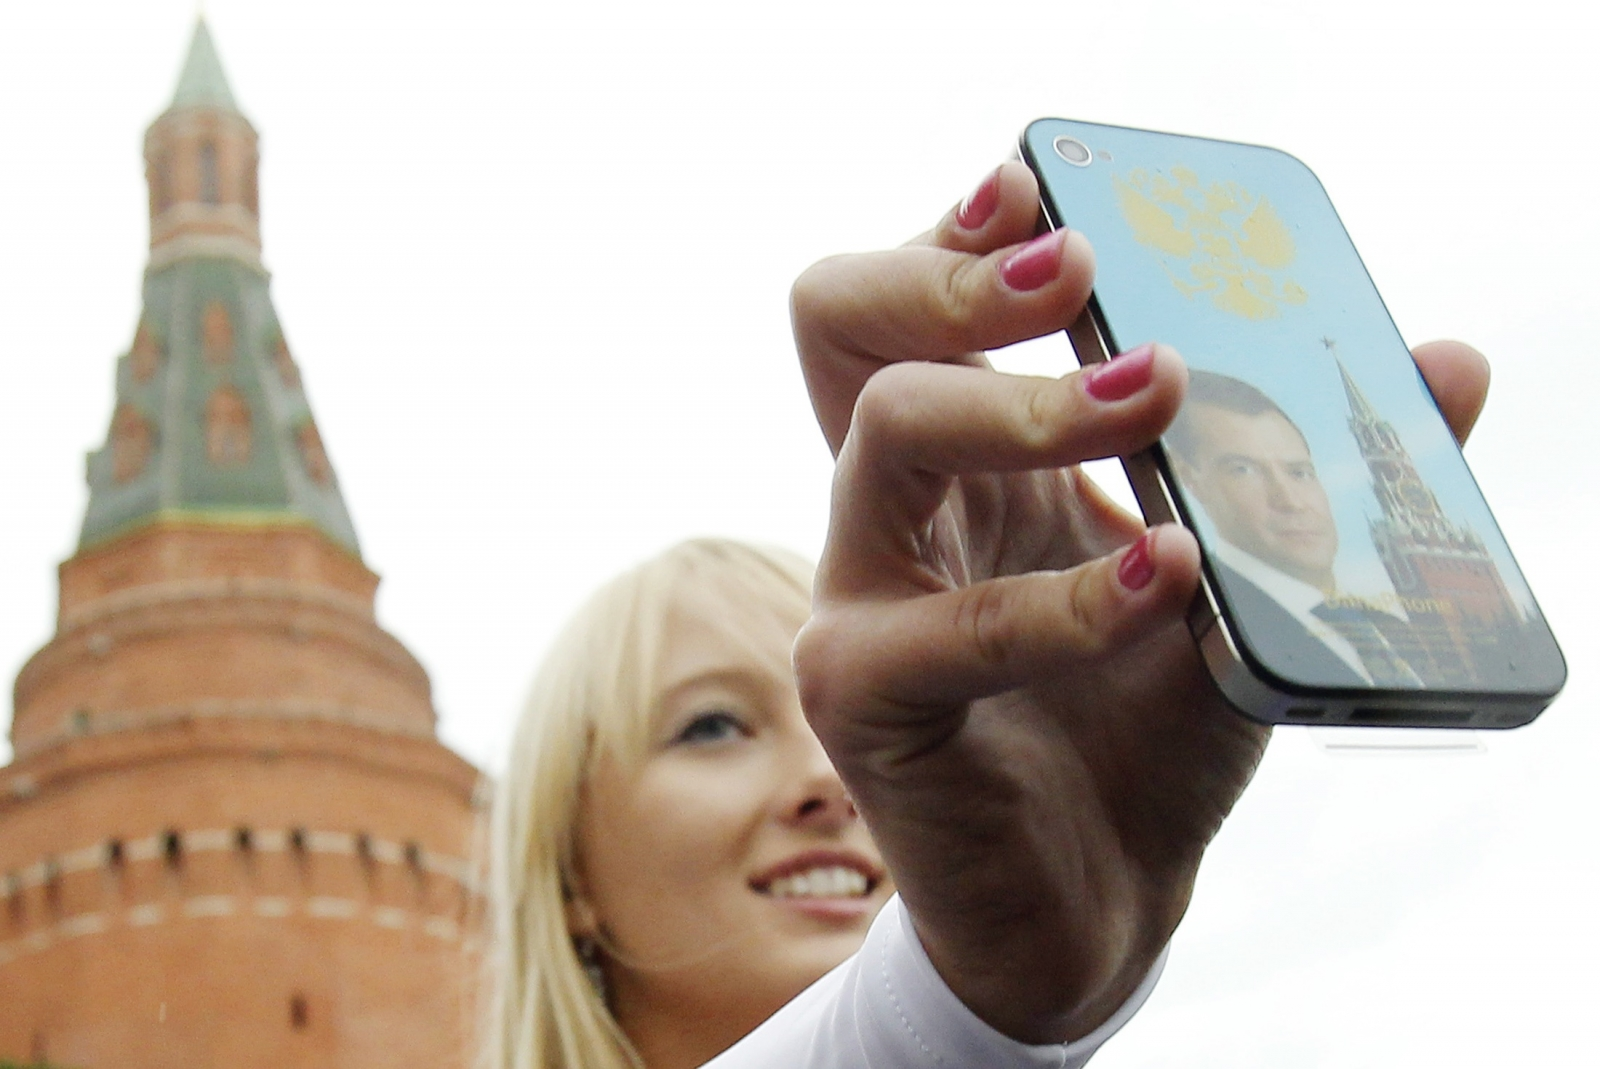 russia iphone ipad ban